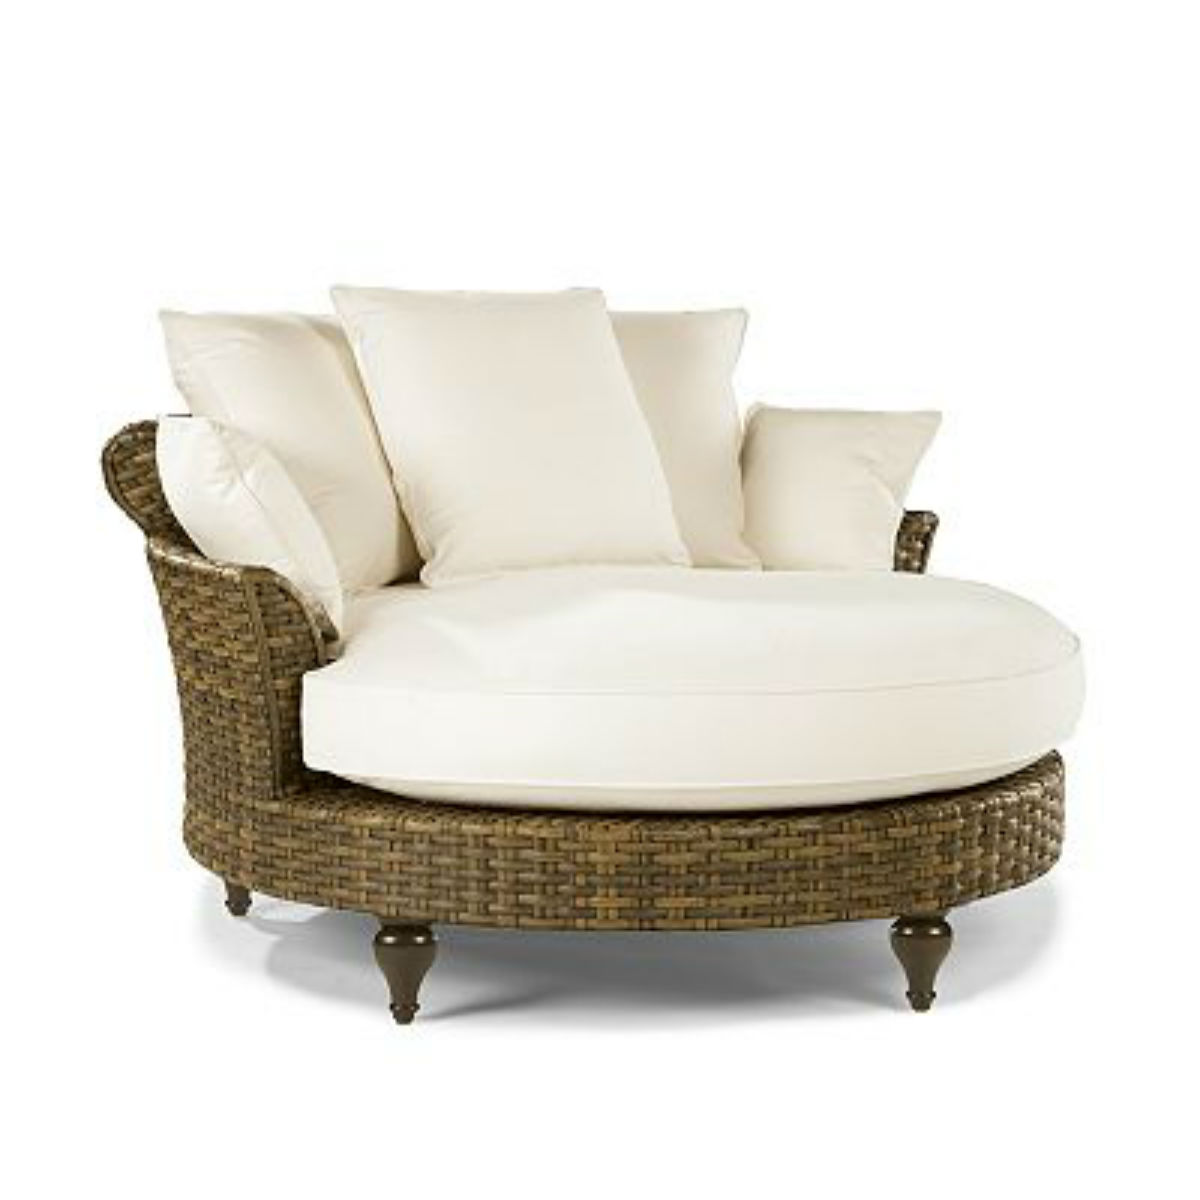 Circle Chaise New Outdoor Slipcovered Furniture Made In The Usa Has